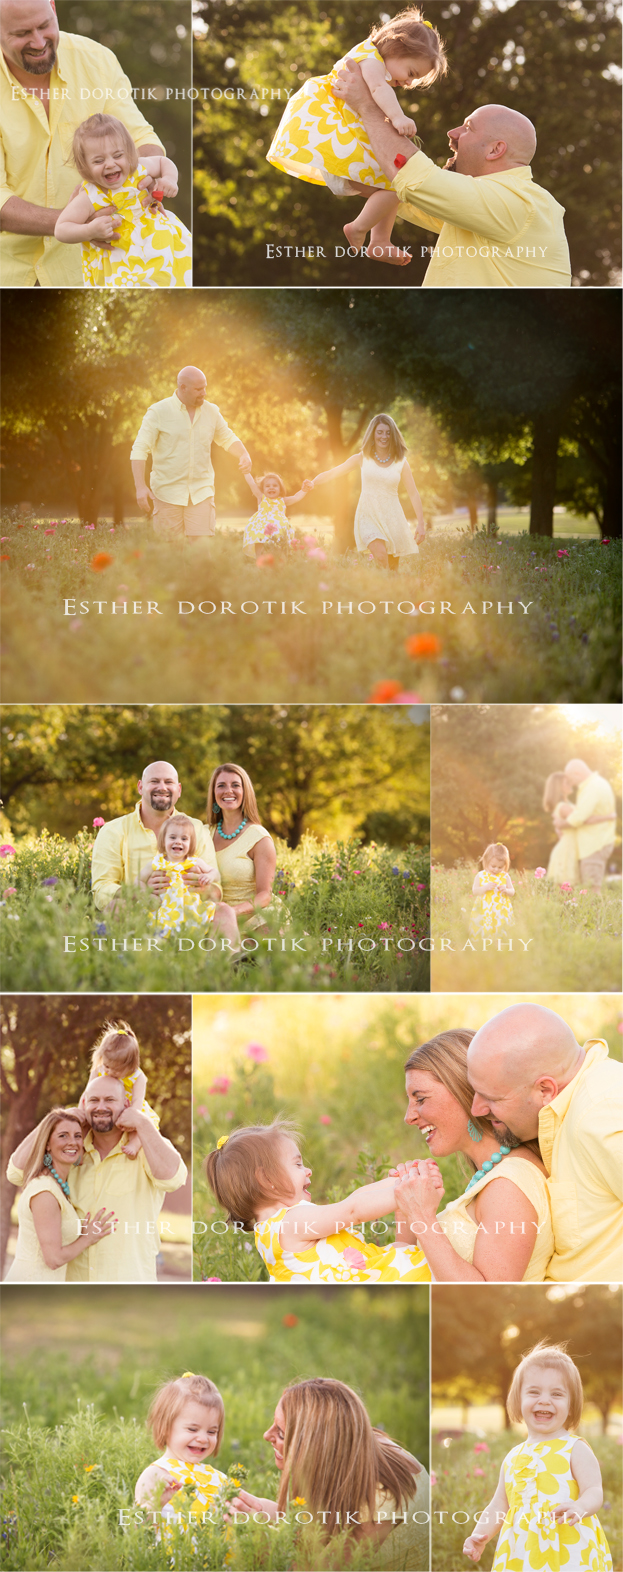 Plano-family-and-baby-photographer-captures-sunset-session-in-field